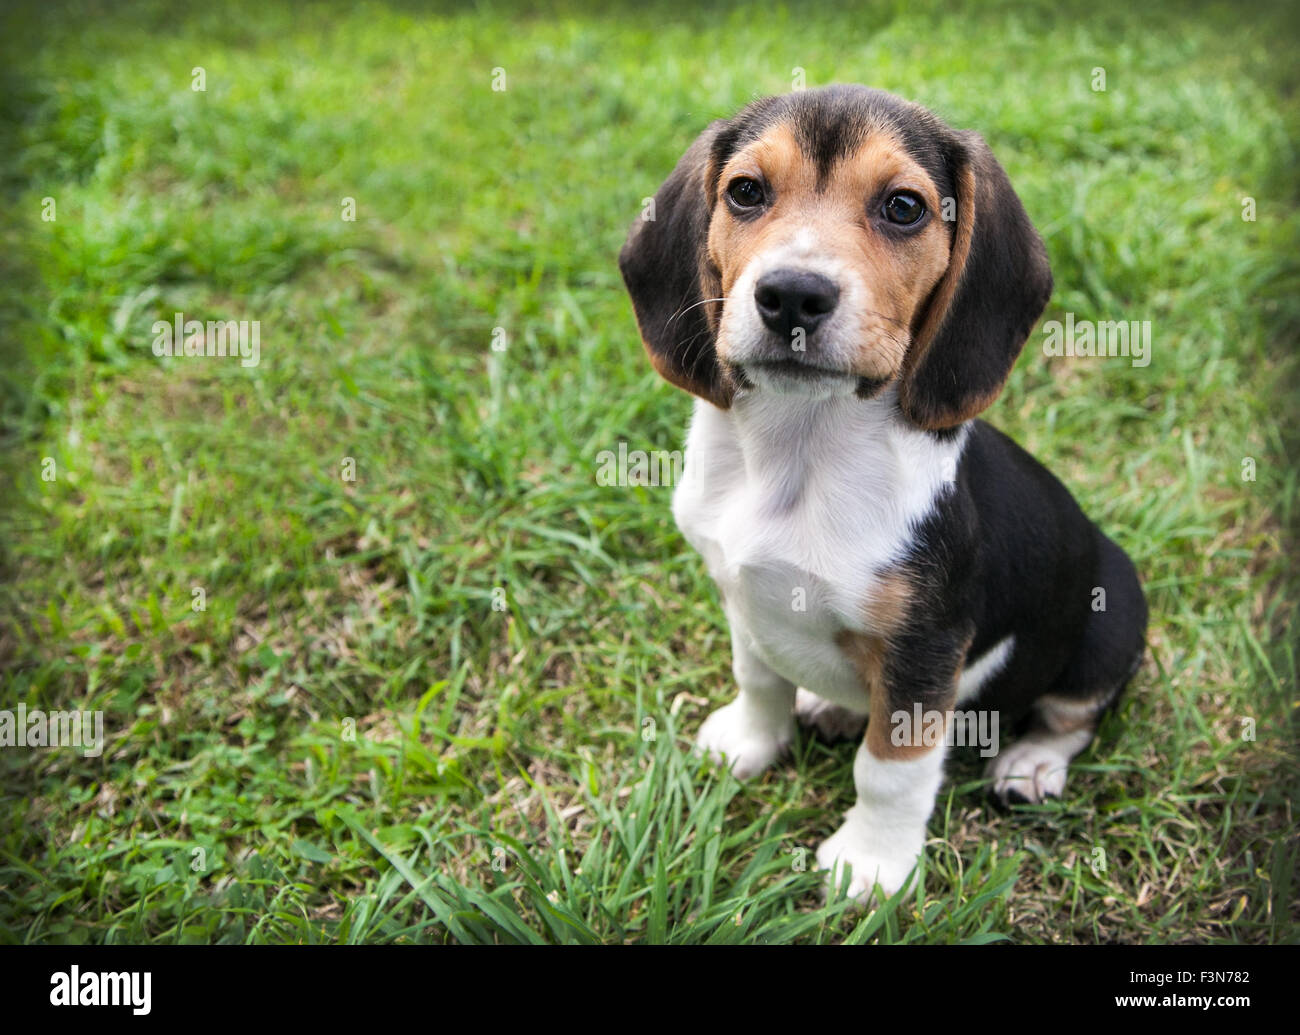 beagle puppy dog with floppy ears is at rest sitting on the green grass - Stock Image